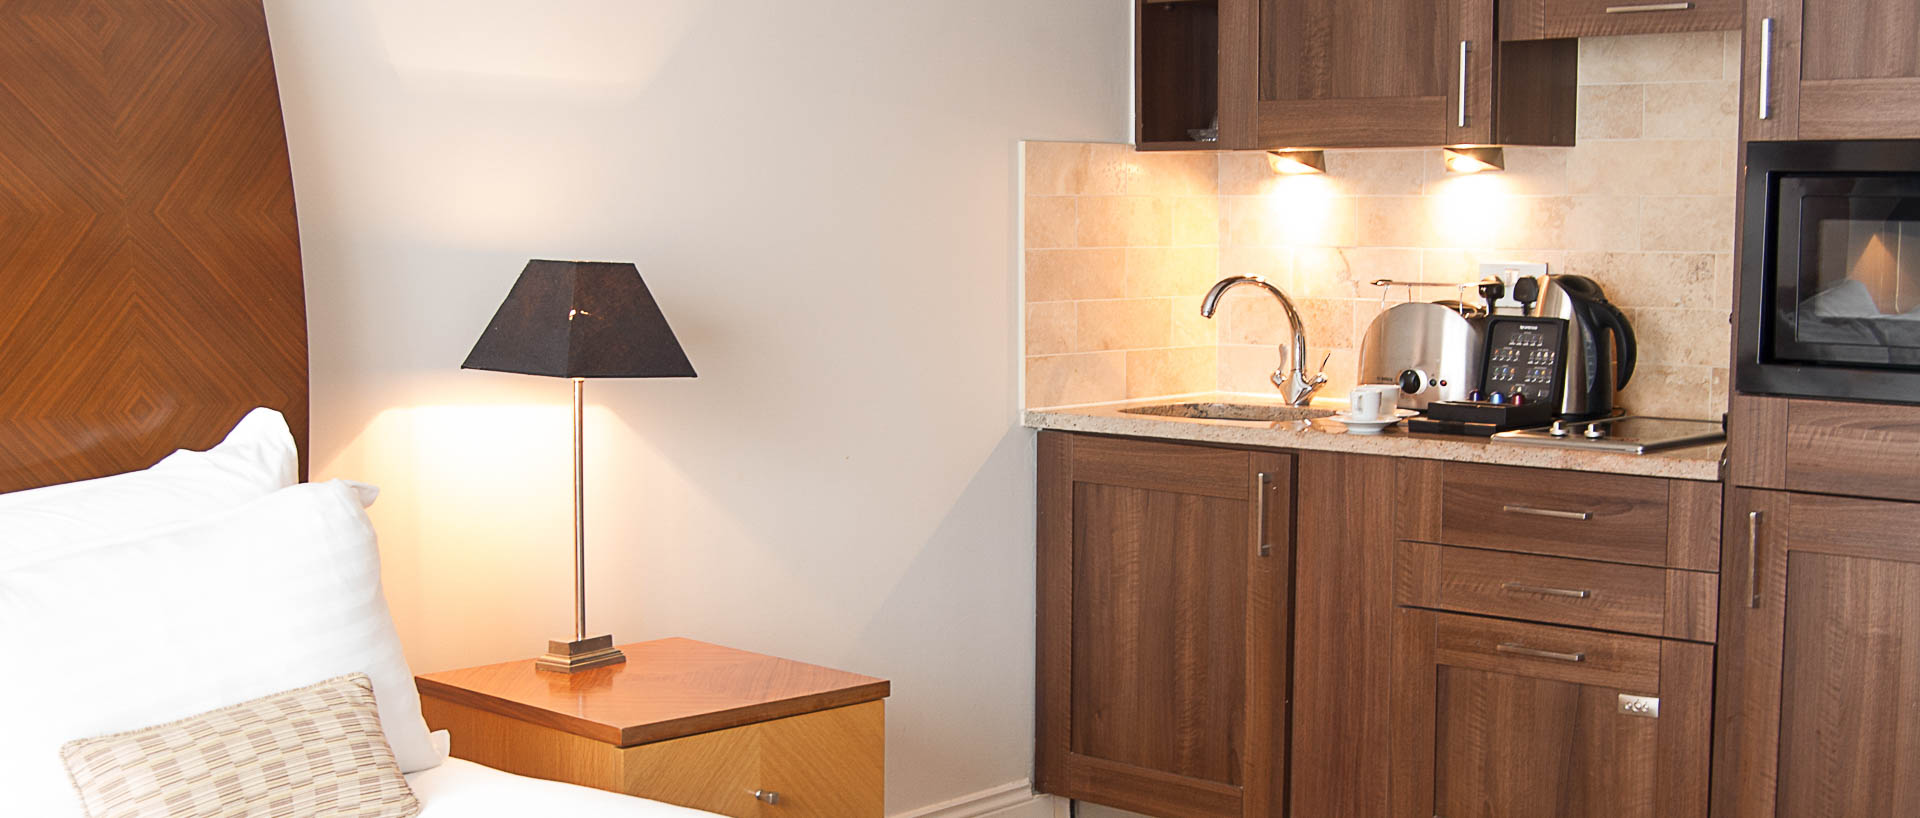 Kitchen Facilities in PREMIER SUITES Dublin Leeson Street serviced apartments